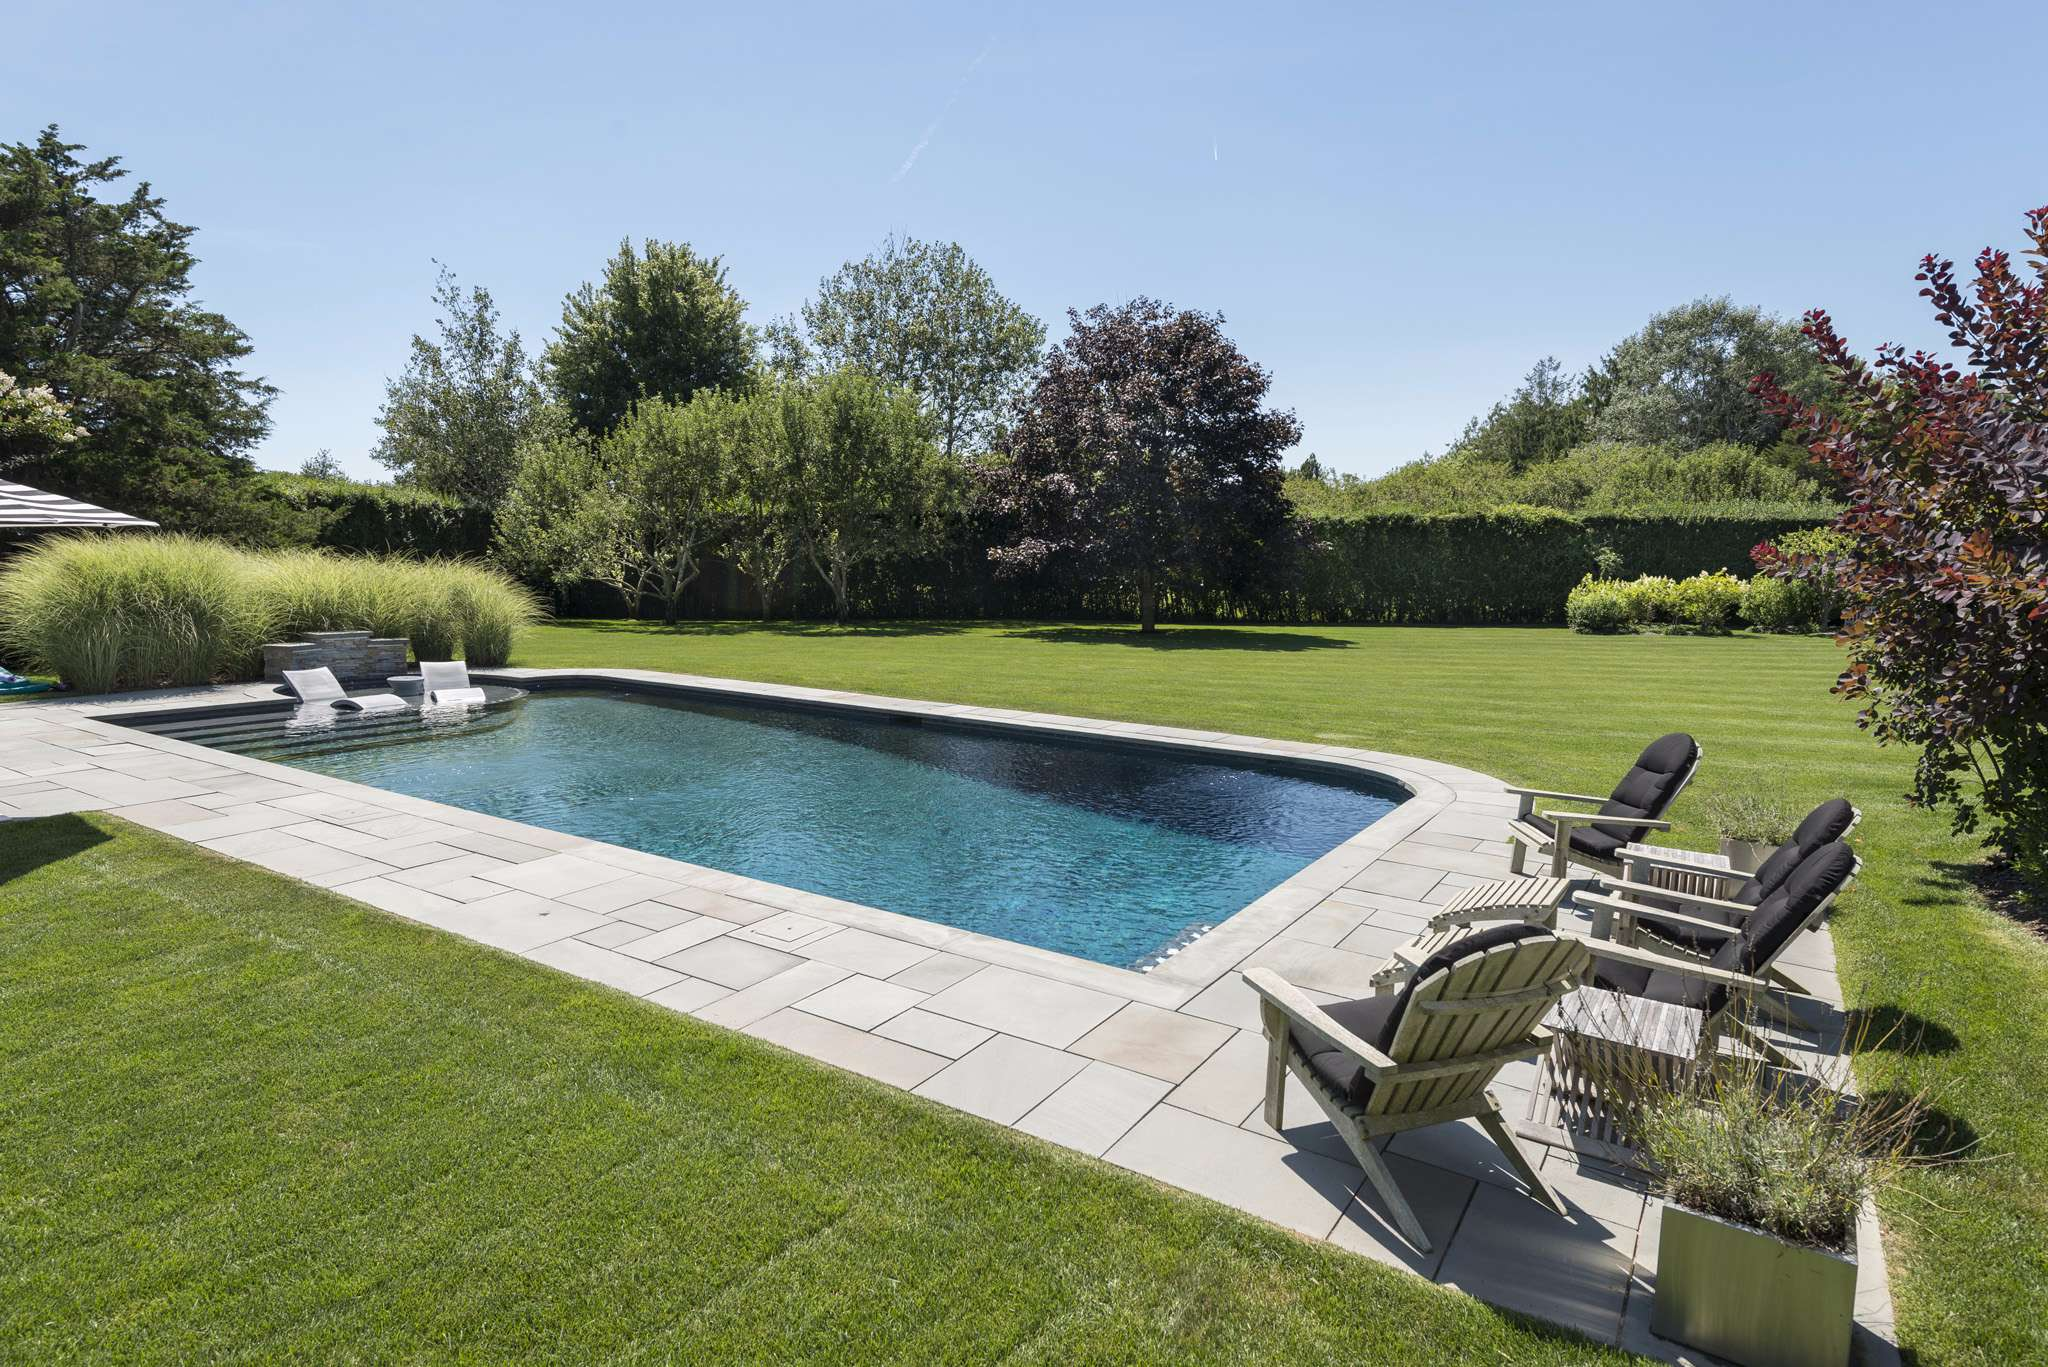 Single Family Home for Sale at Elegant Beginnings On Hedges Lane 625 Hedges Lane, Sagaponack, New York